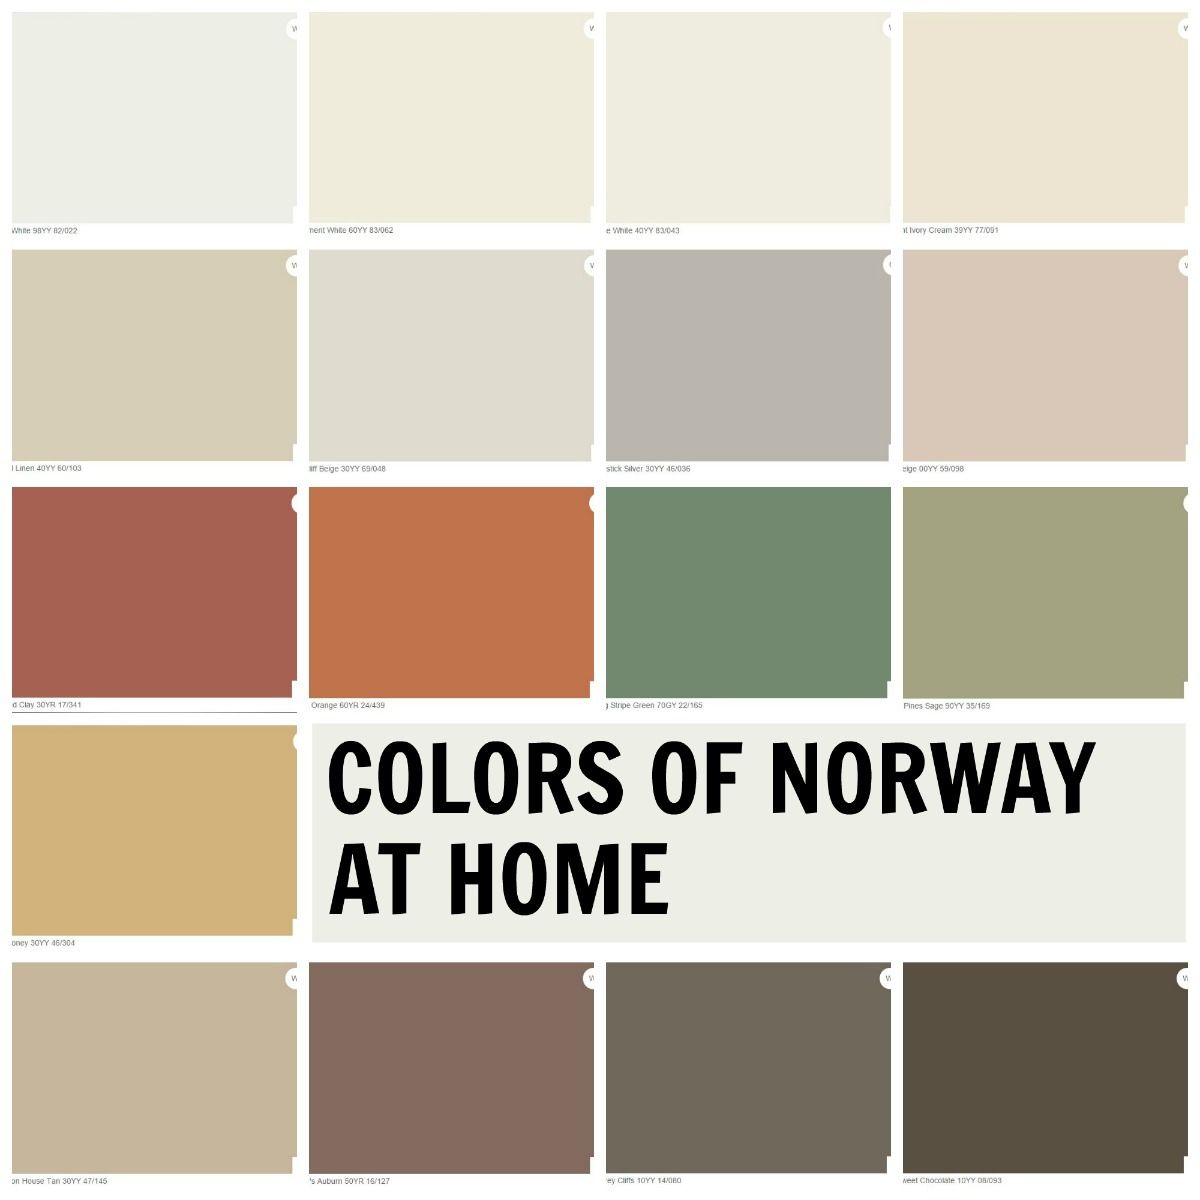 Home Decor Color Palettes 1000 images about nordic interior design on pinterest colour palettes design seeds and pastel Colors Of Norway At Home Palette The Perfect Combination For Our Home